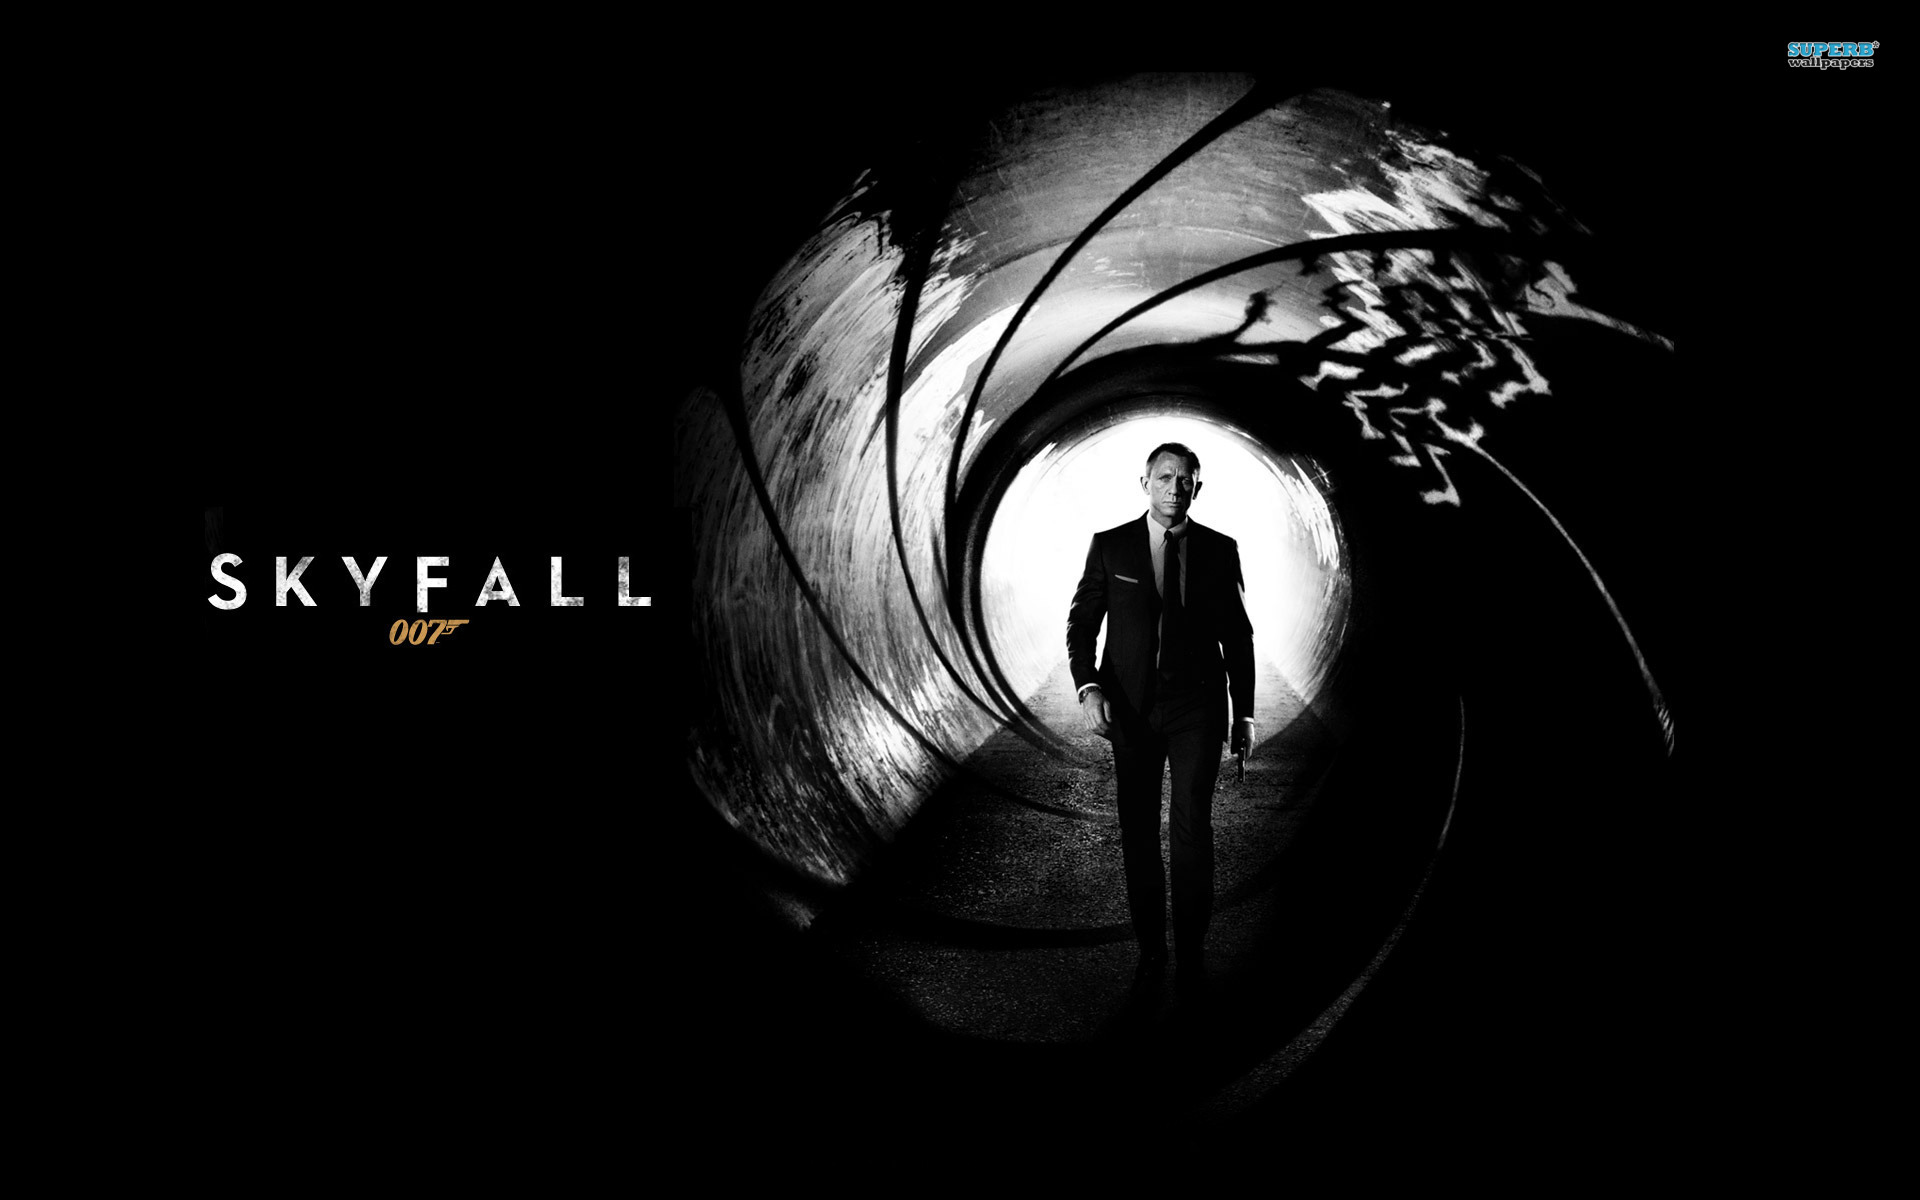 James Bond - Skyfall wallpaper 1920x1200